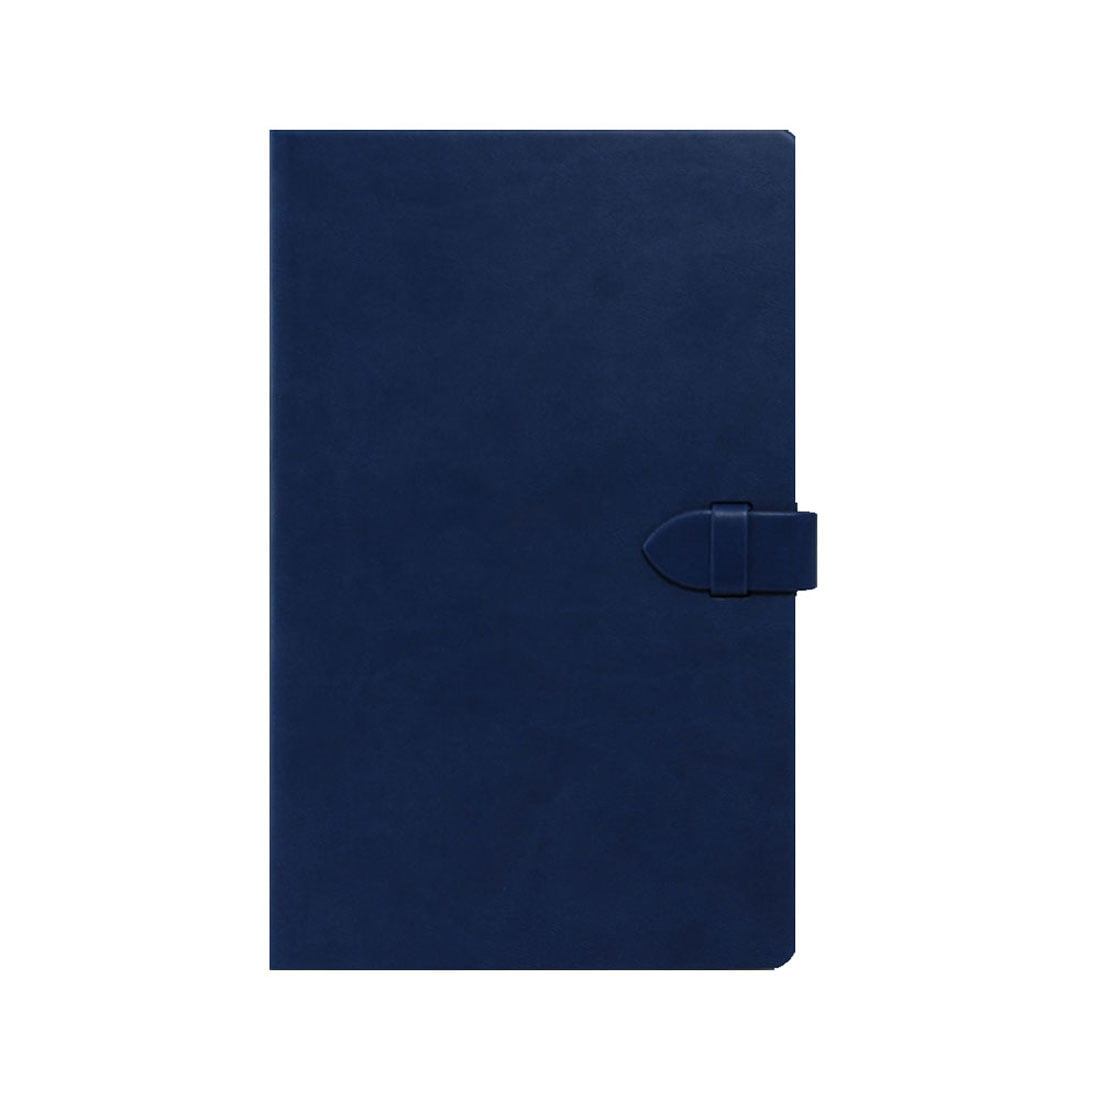 Medium pockt notebook with round corners, internal document pocket.